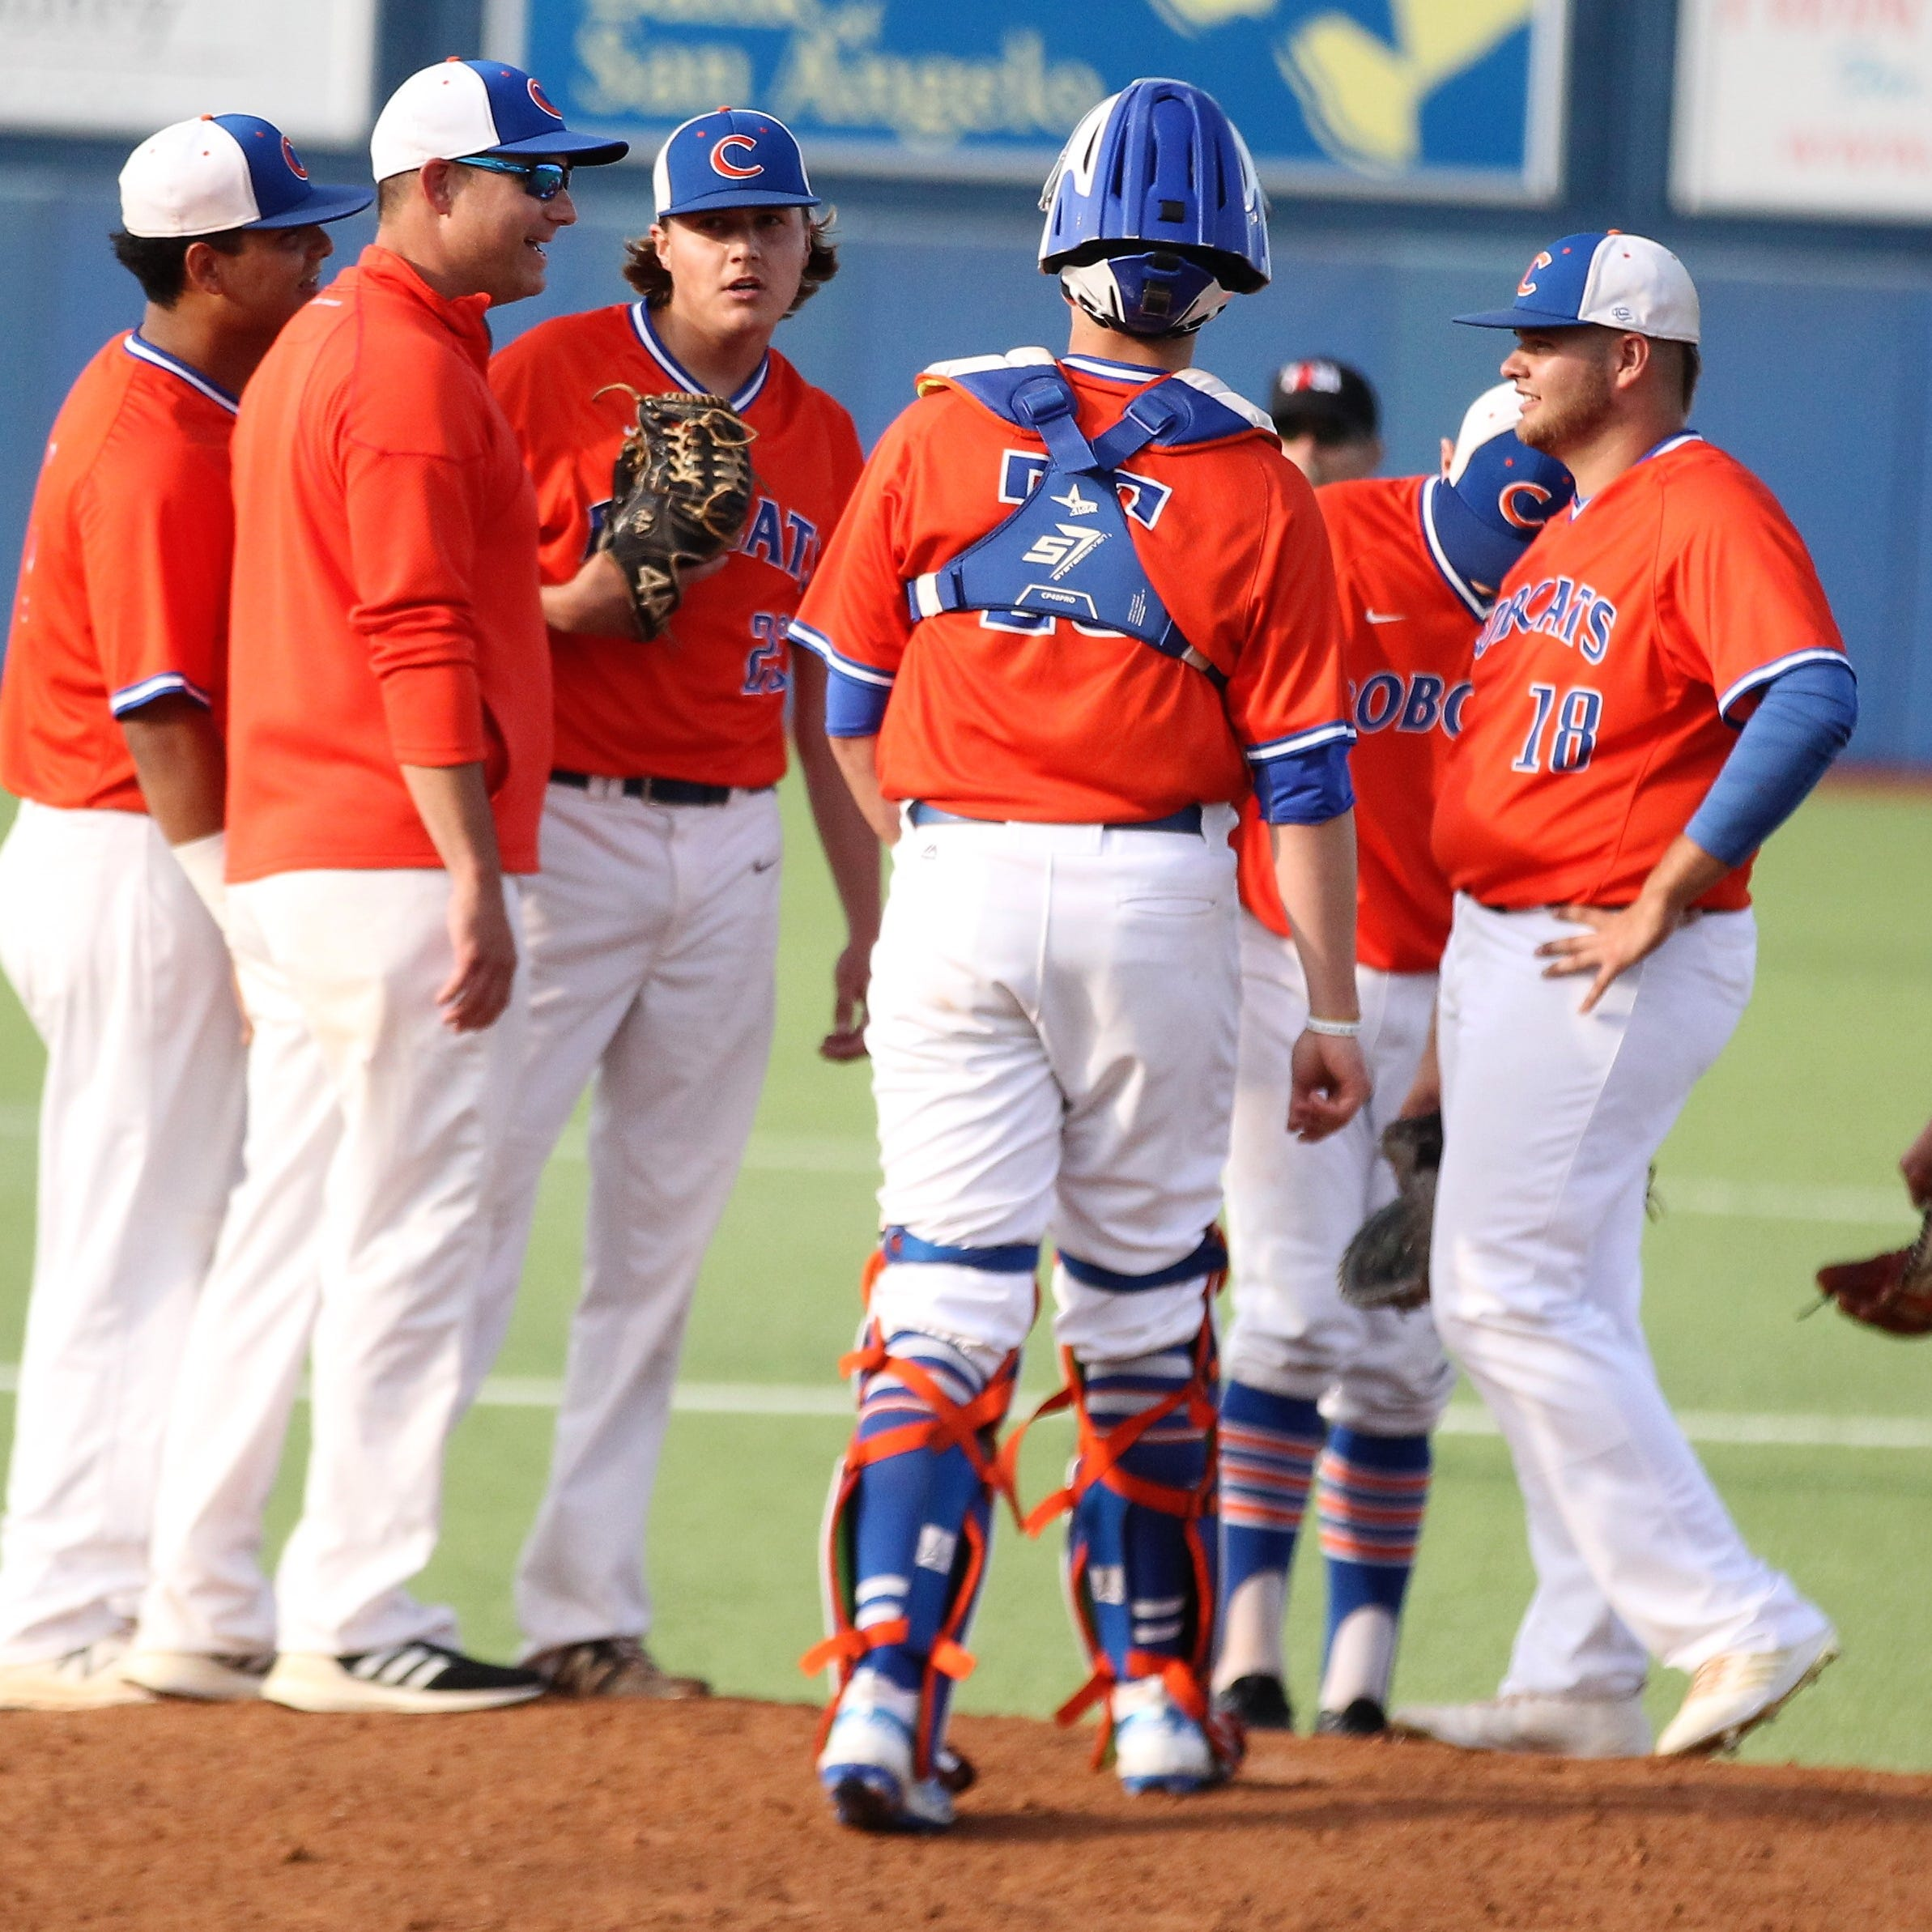 BASEBALL PLAYOFFS ROUNDUP: San Angelo Central, Wall take series openers